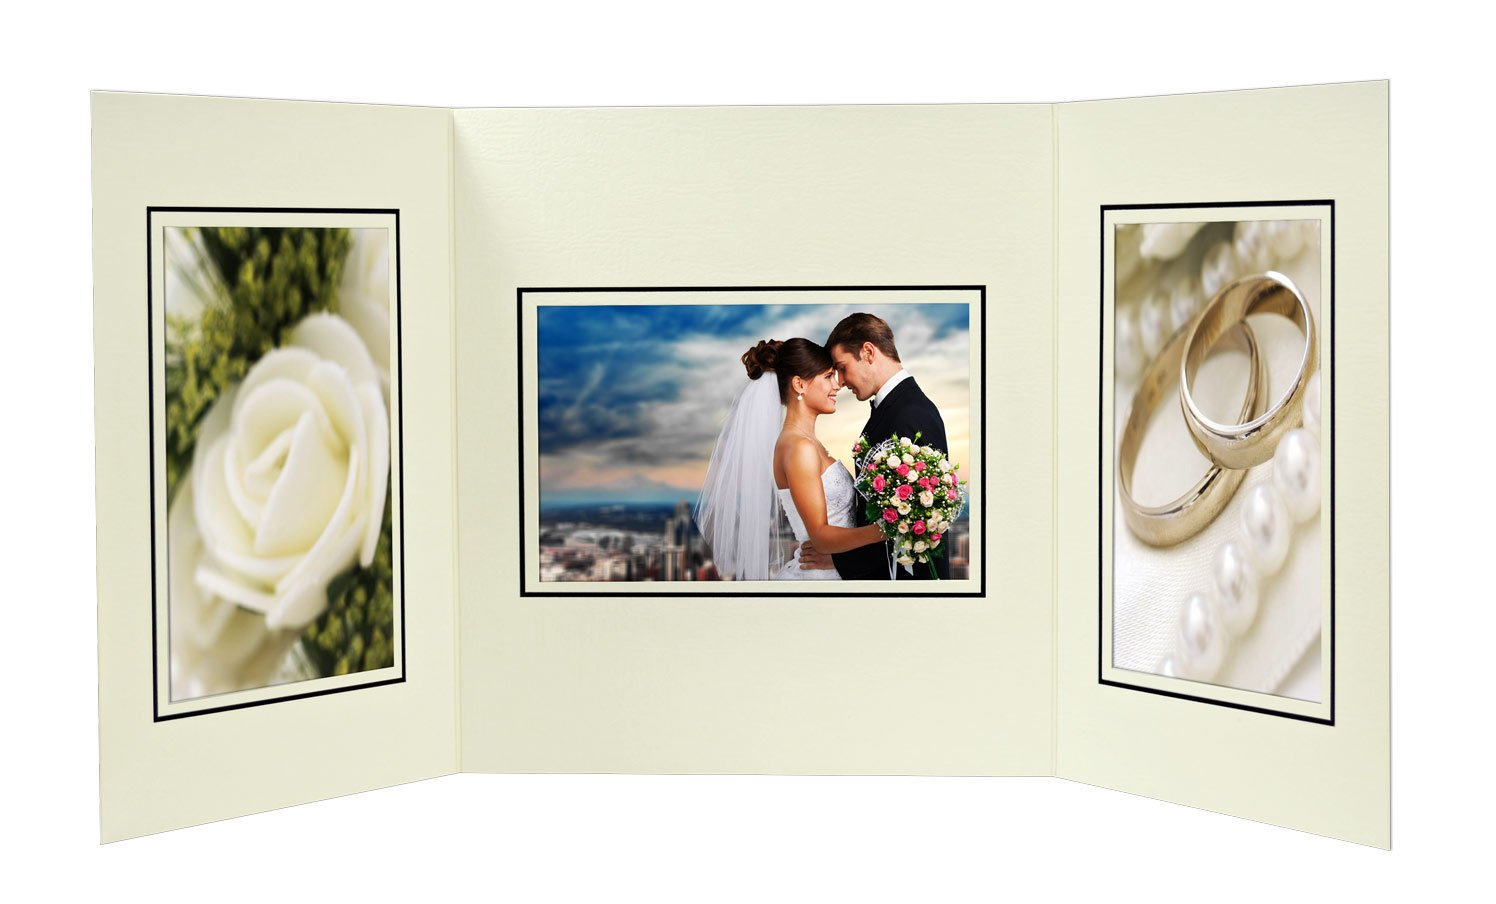 Golden State Art, Cardboard Photo Folder for 3 4x6 Photo (Pack of 50) GS002 Ivory Color